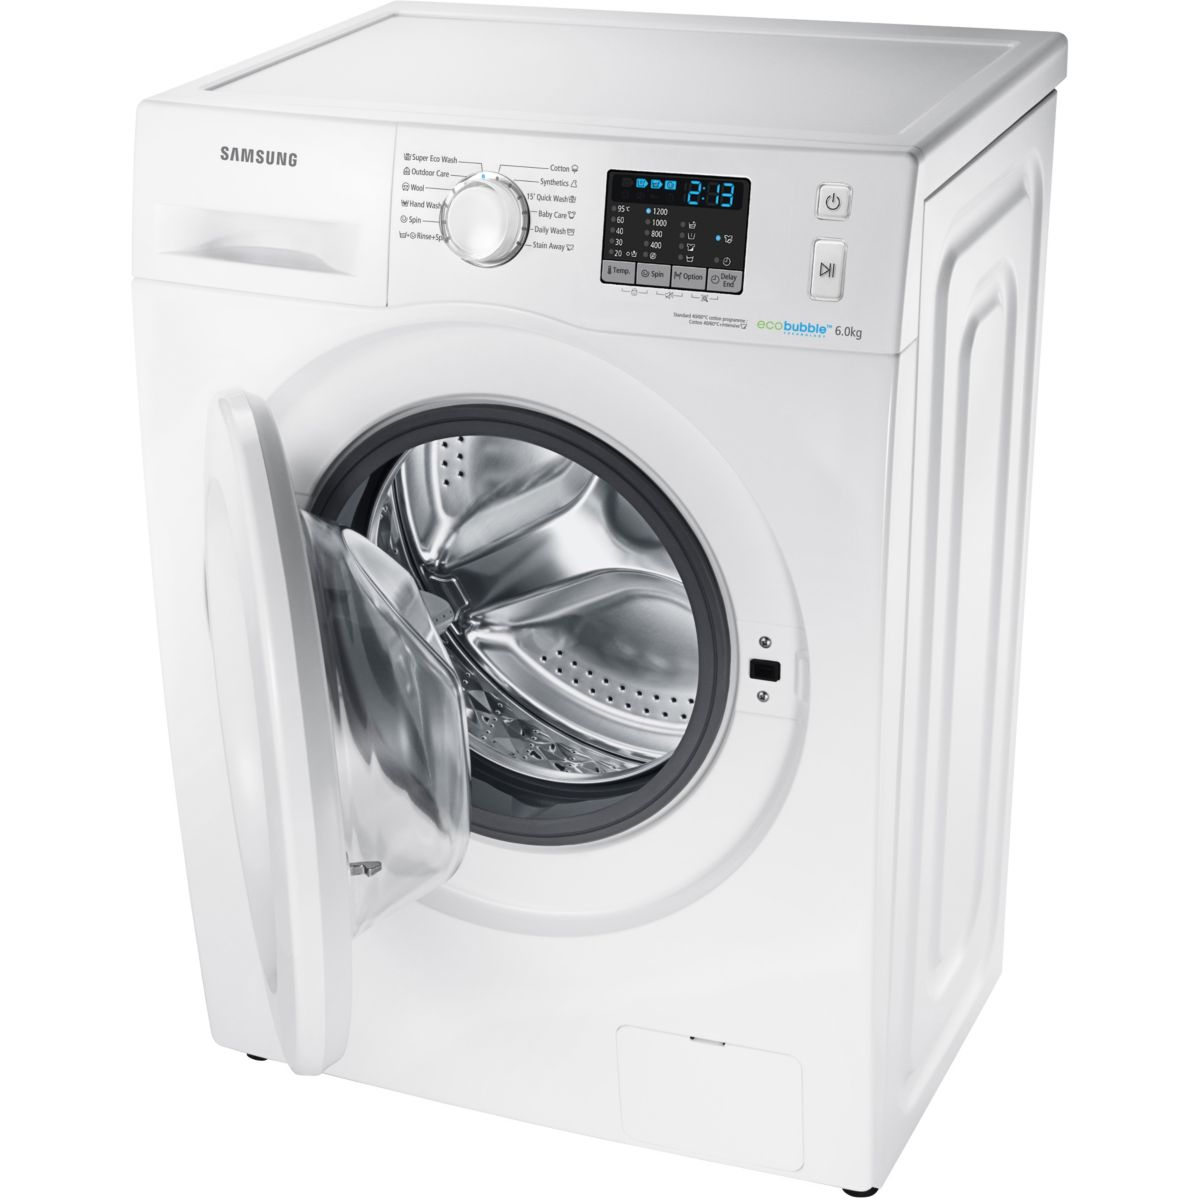 samsung wf60f4e0w2w lave linge frontal eco bubble 6 kg comparer avec. Black Bedroom Furniture Sets. Home Design Ideas